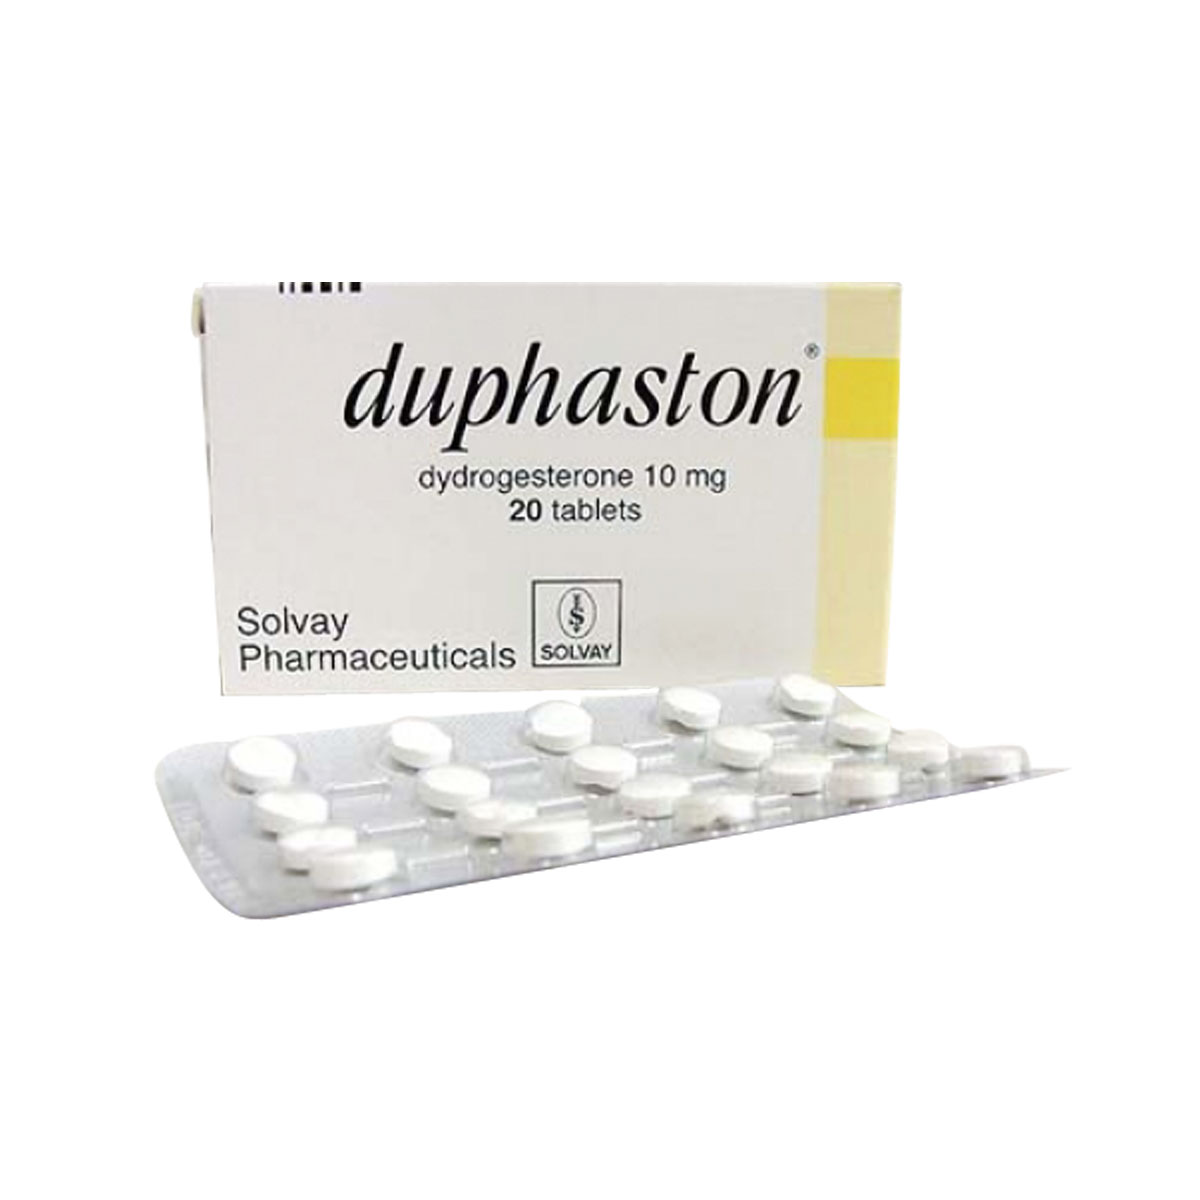 DUPHASTON (imported)